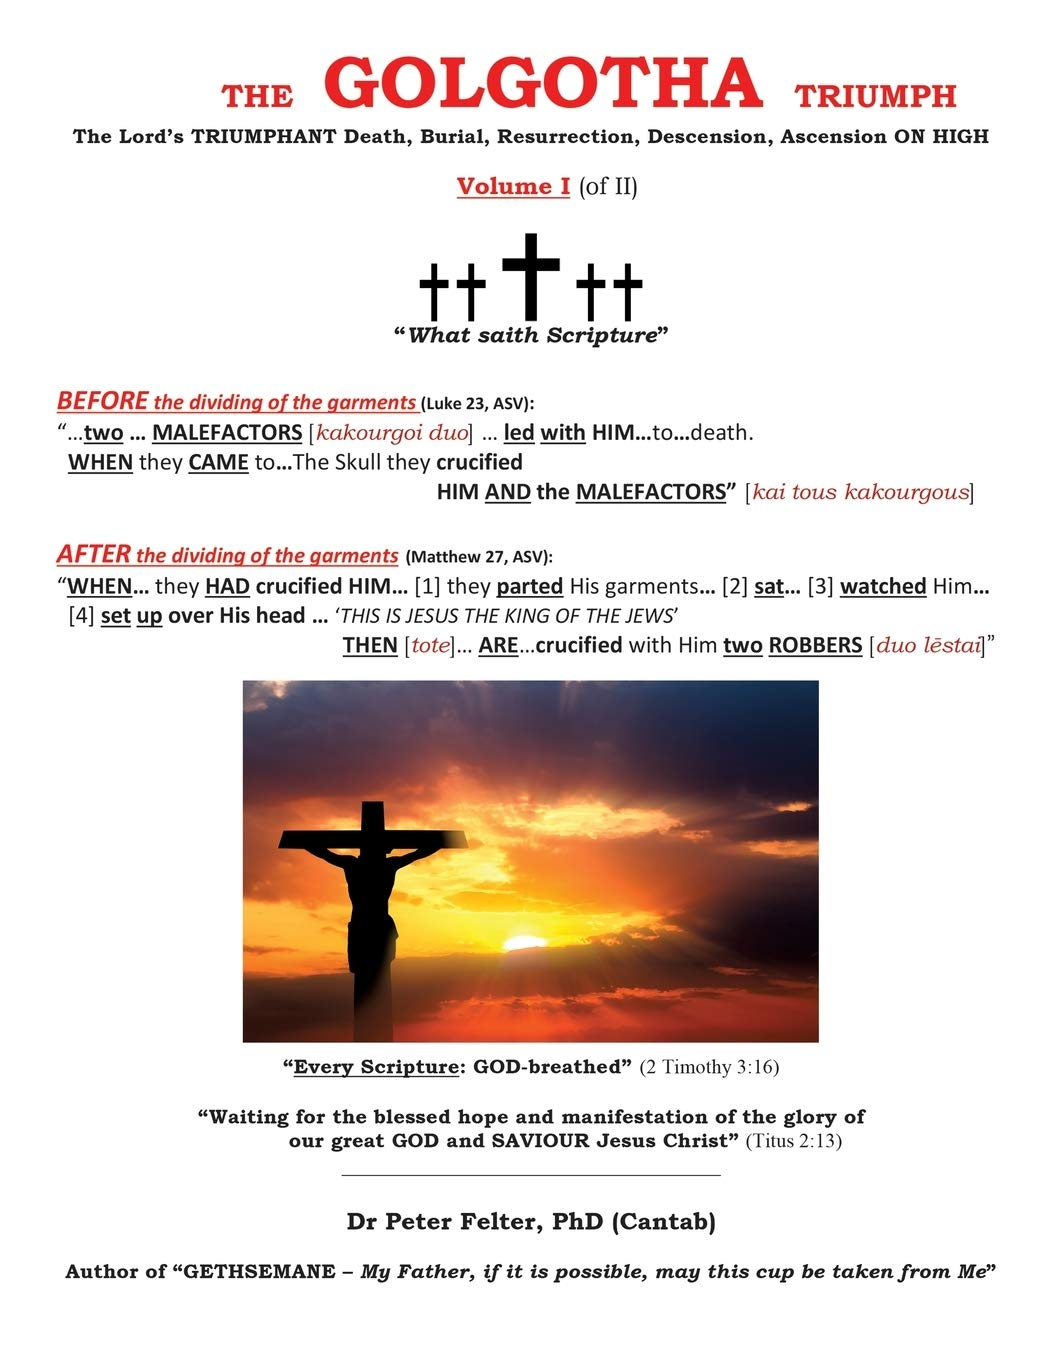 The Golgotha Triumph: The Lord's TRIUMPHANT Death, Burial, Resurrection, Descension, Ascension ON HIGH Volume I